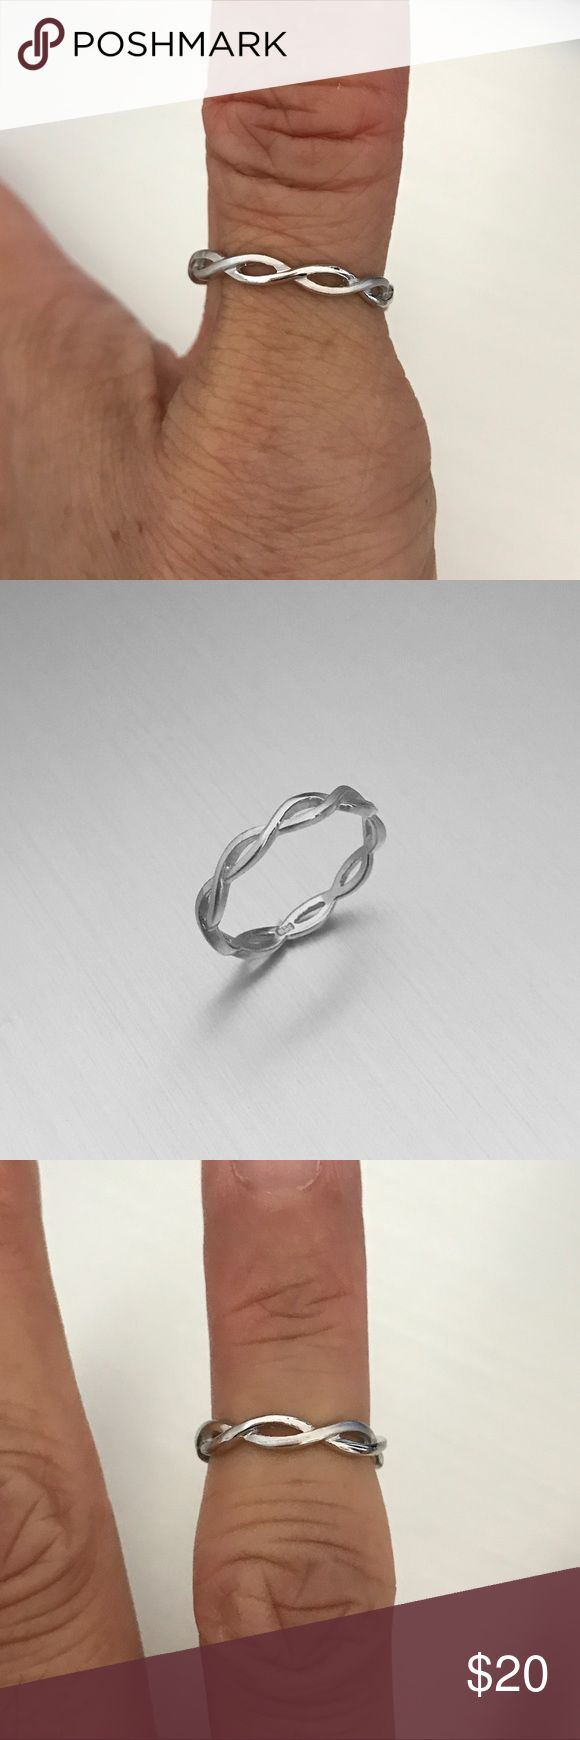 Sterling Silver Infinity Eternity Ring Sterling Silver Infinity Eternity Ring 💍 Toe Ring 💍 Midi Ring 💍 Pinky Ring 💍 Index Ring 💍 Thumb Ring 💍 Stackable Ring 💍 925 Sterling Silver 💍 Band Width 3 mm Jewelry Rings